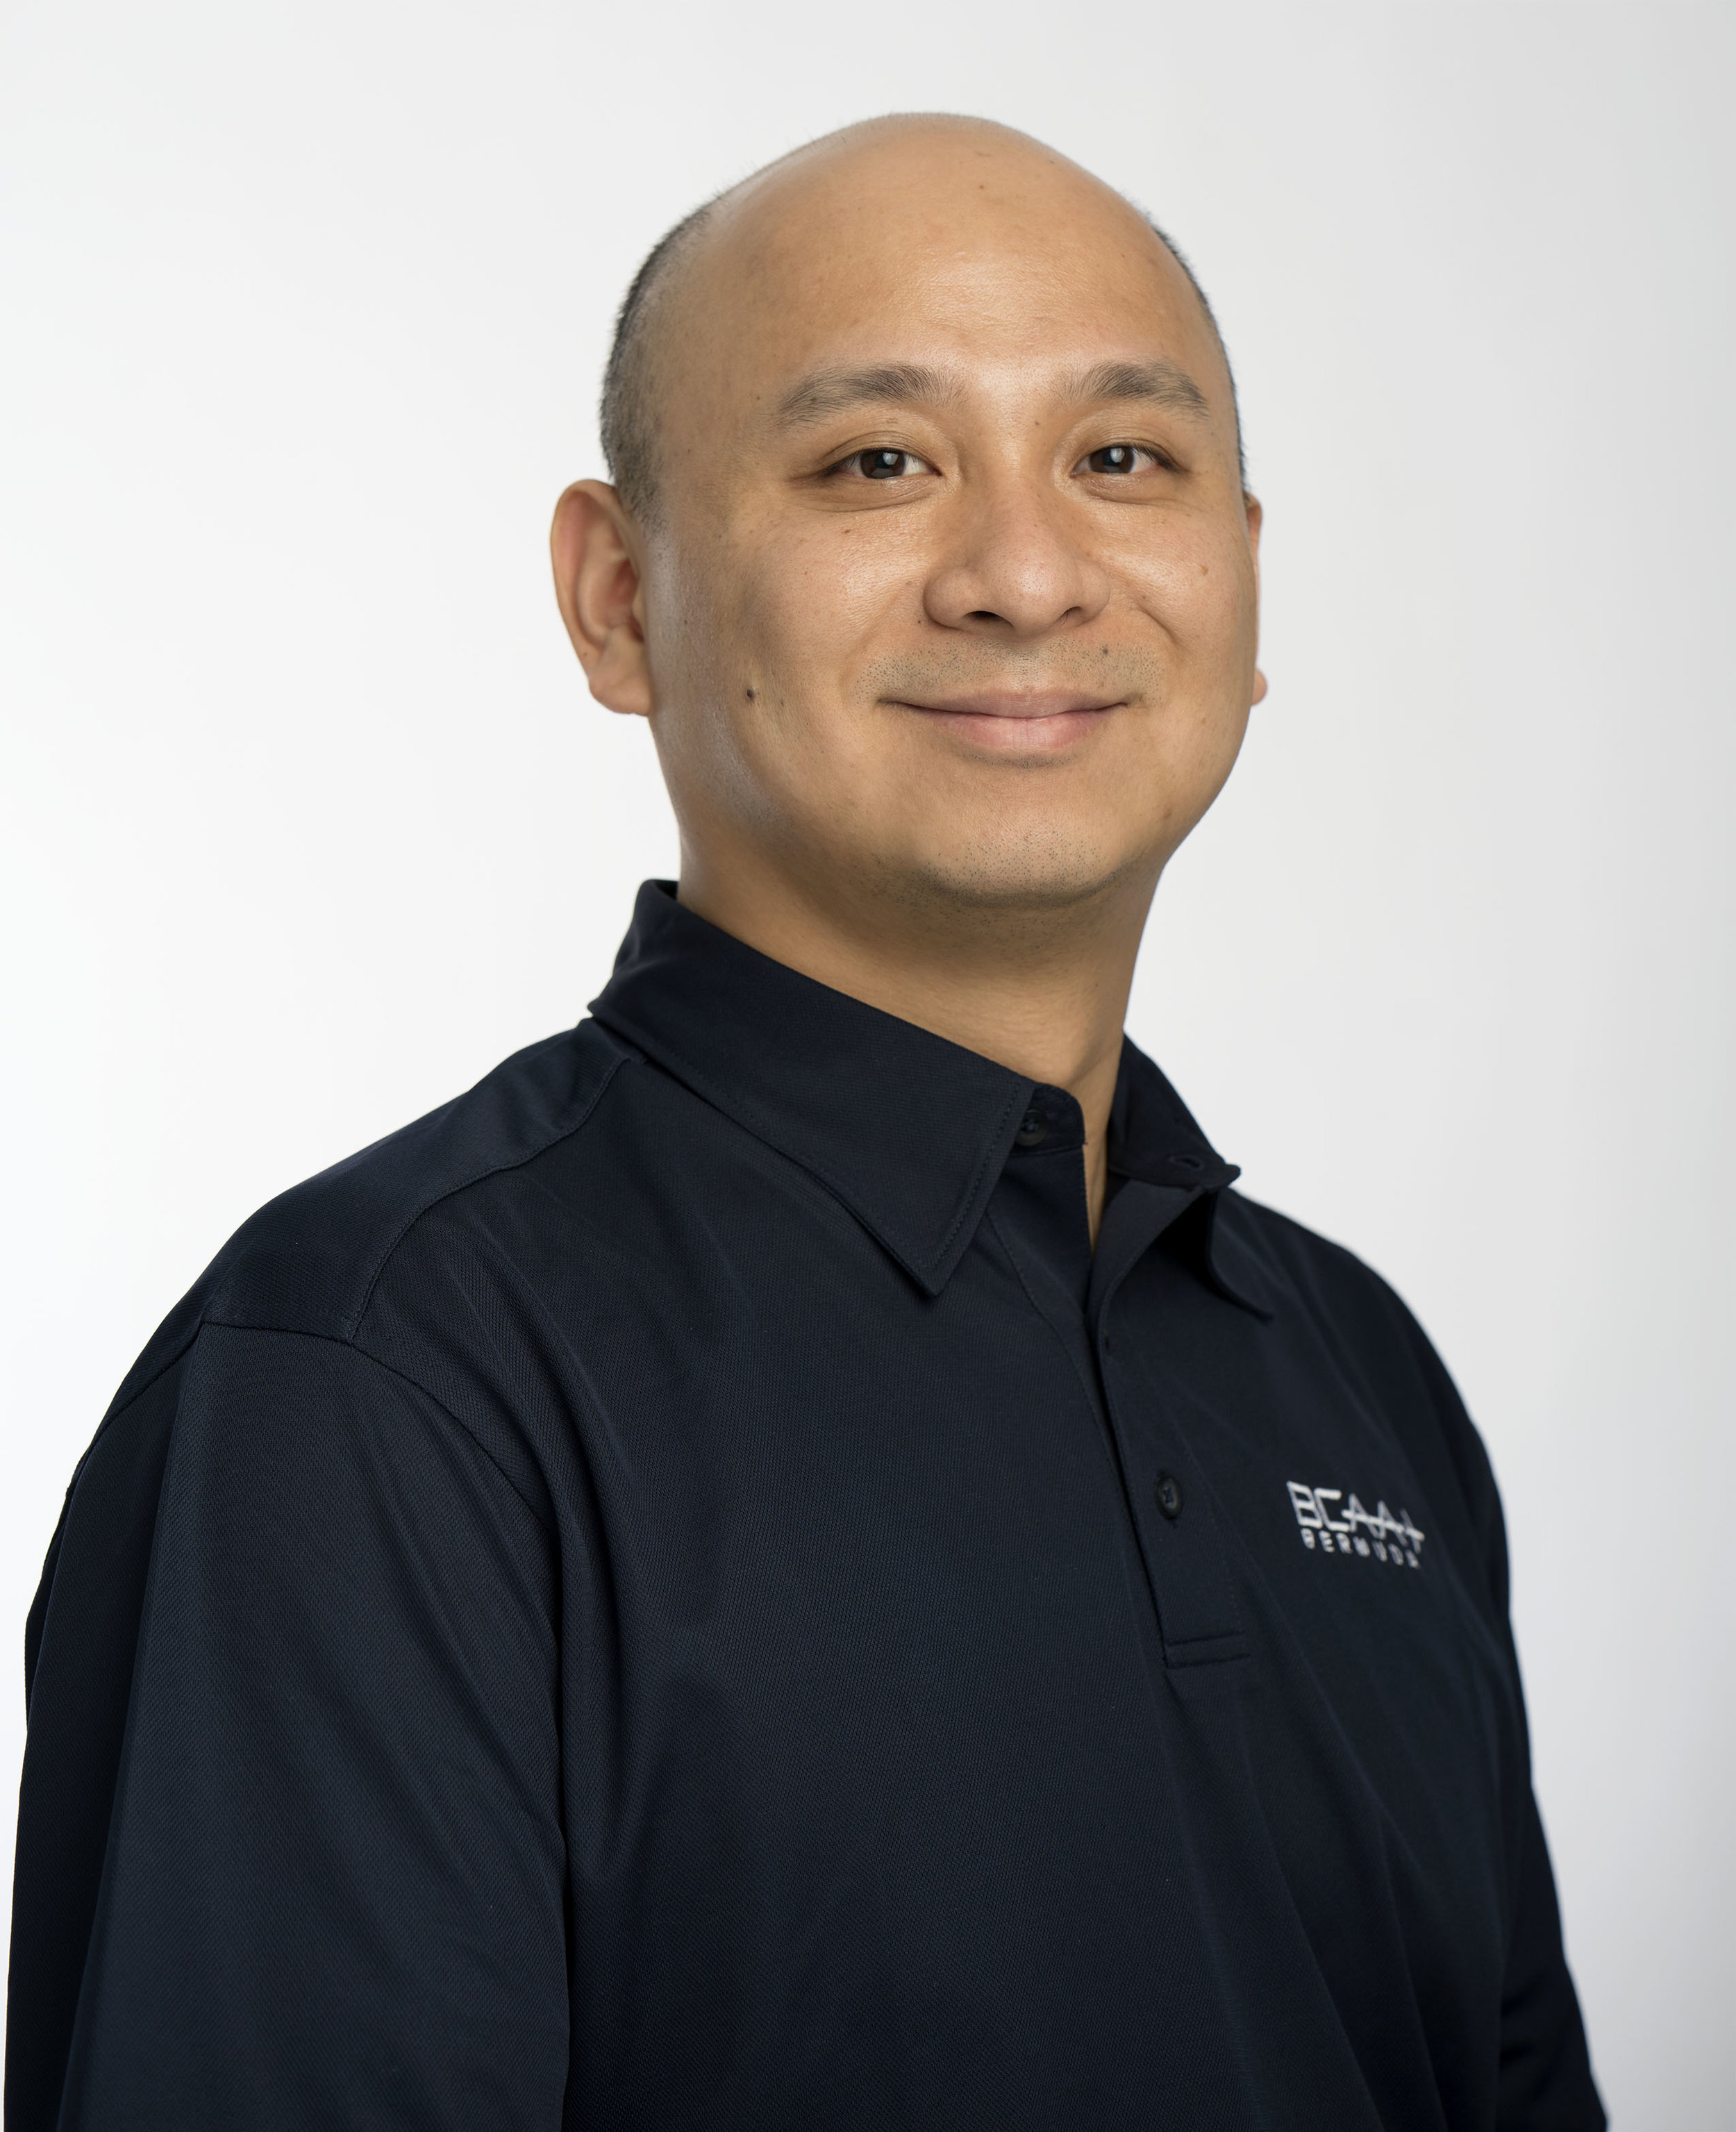 Jason Zhang joins the BCAA team with a wealth of technical experience within the Asia market. As a licensed and type-rated engineer with over 13 years of commercial and business aviation experience, Jason is well-suited to join the experts at BCAA.